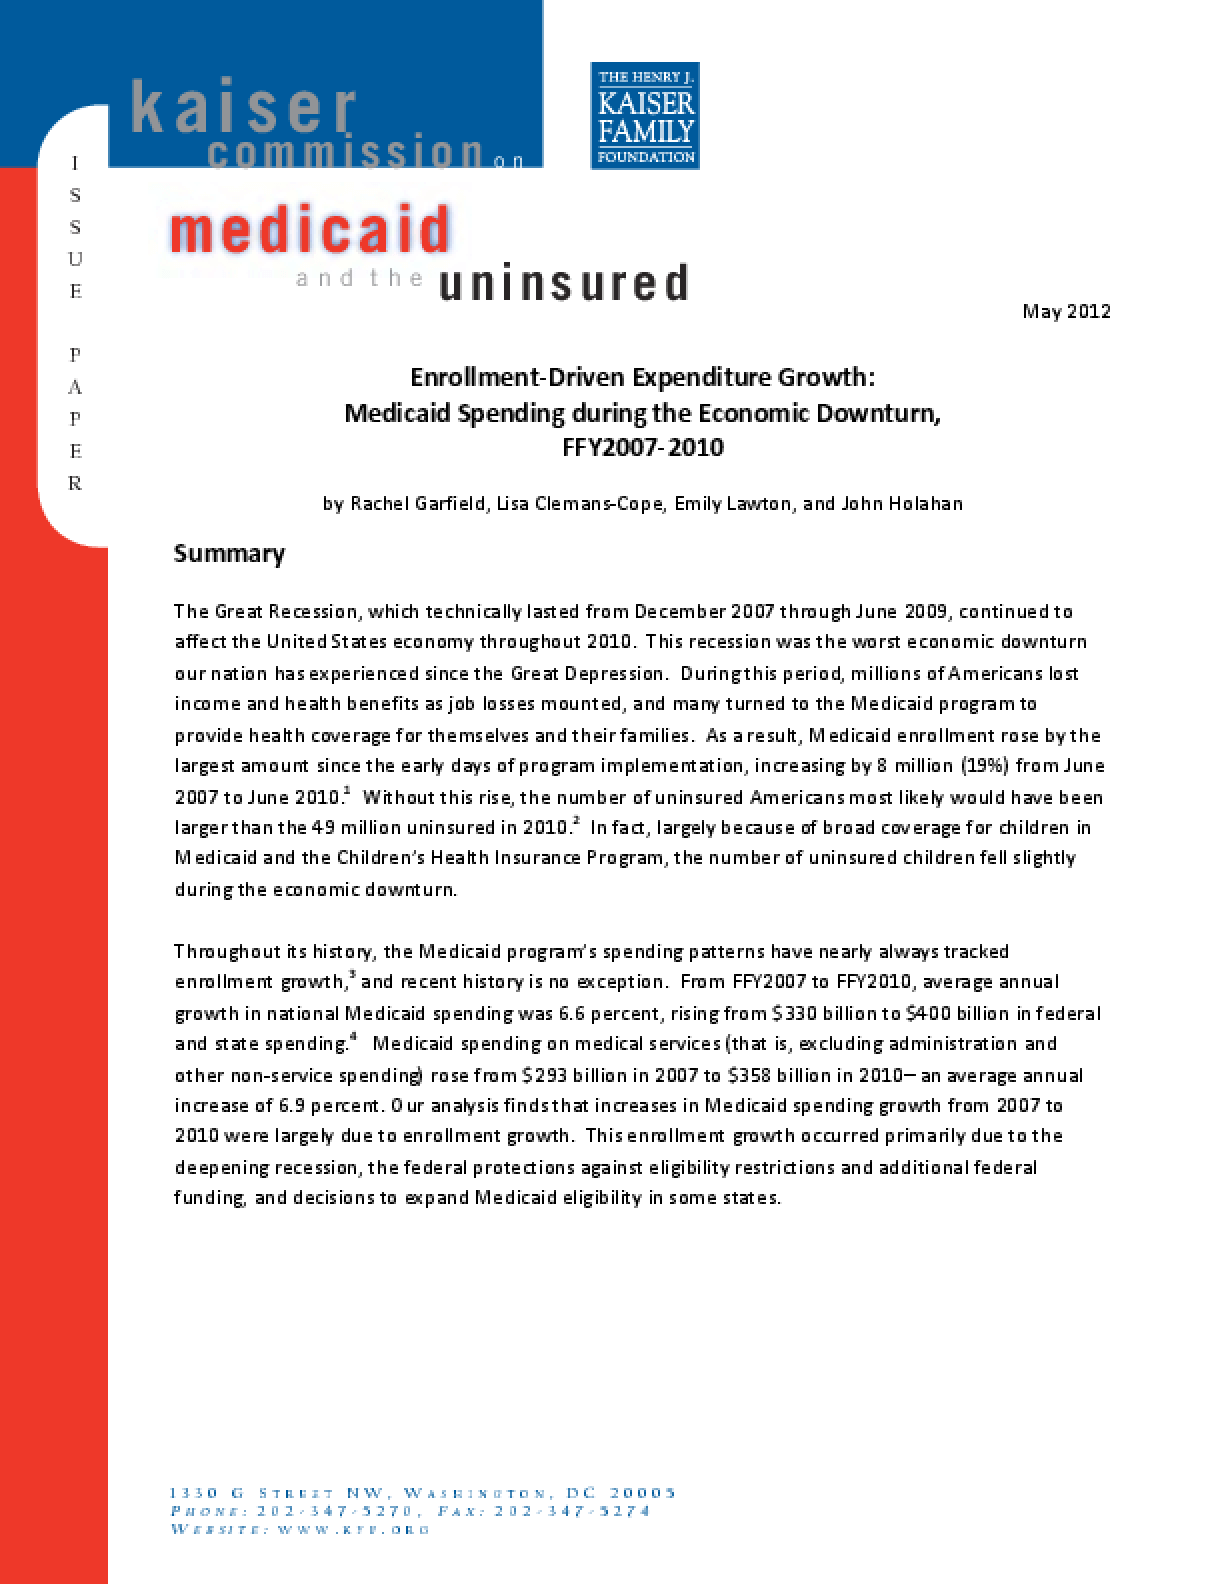 Enrollment-Driven Expenditure Growth: Medicaid Spending During the Economic Downturn, FFY2007-2010